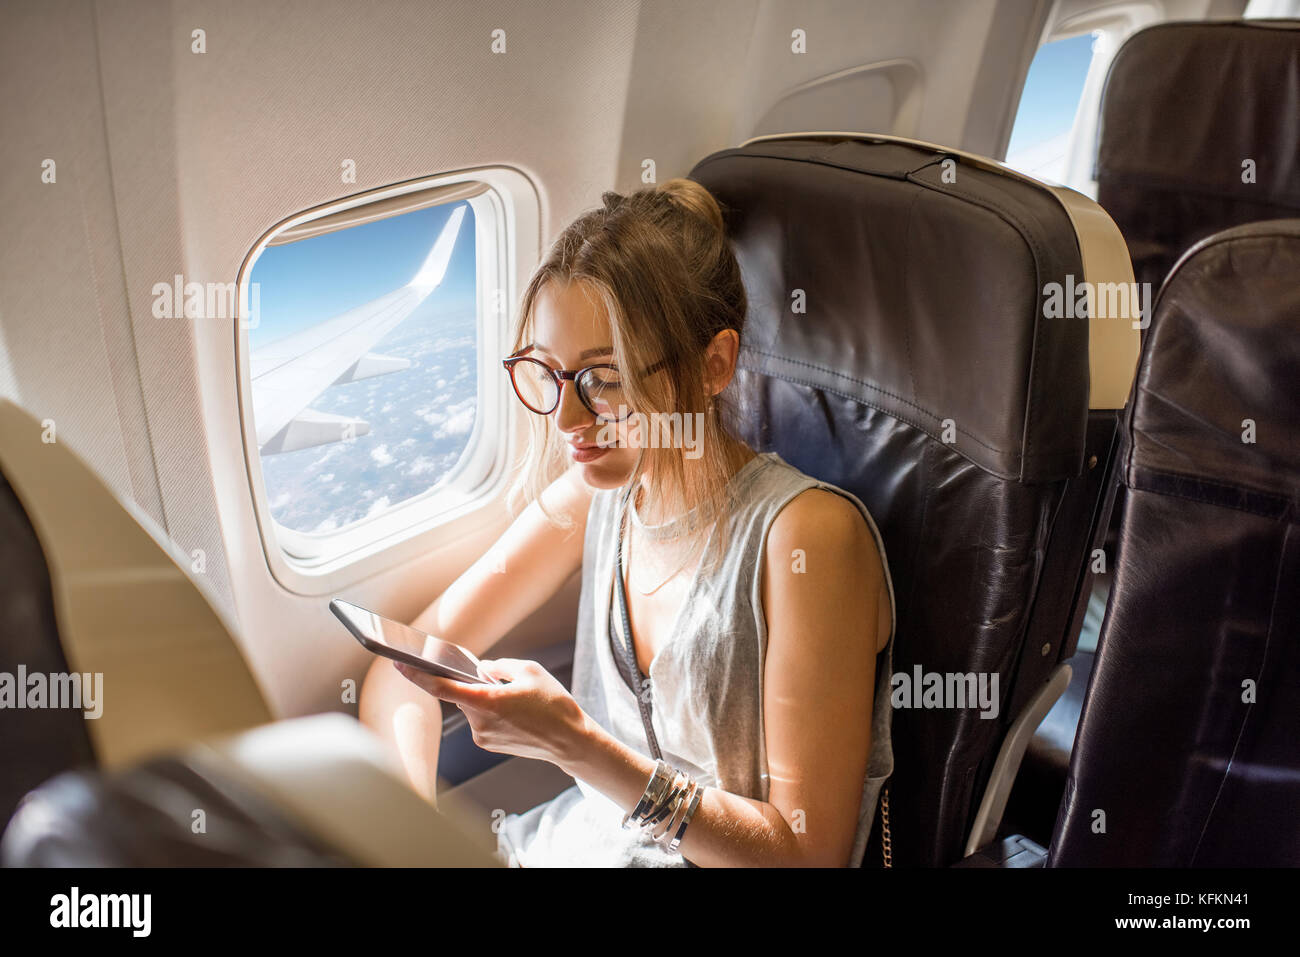 Woman in the airplane - Stock Image